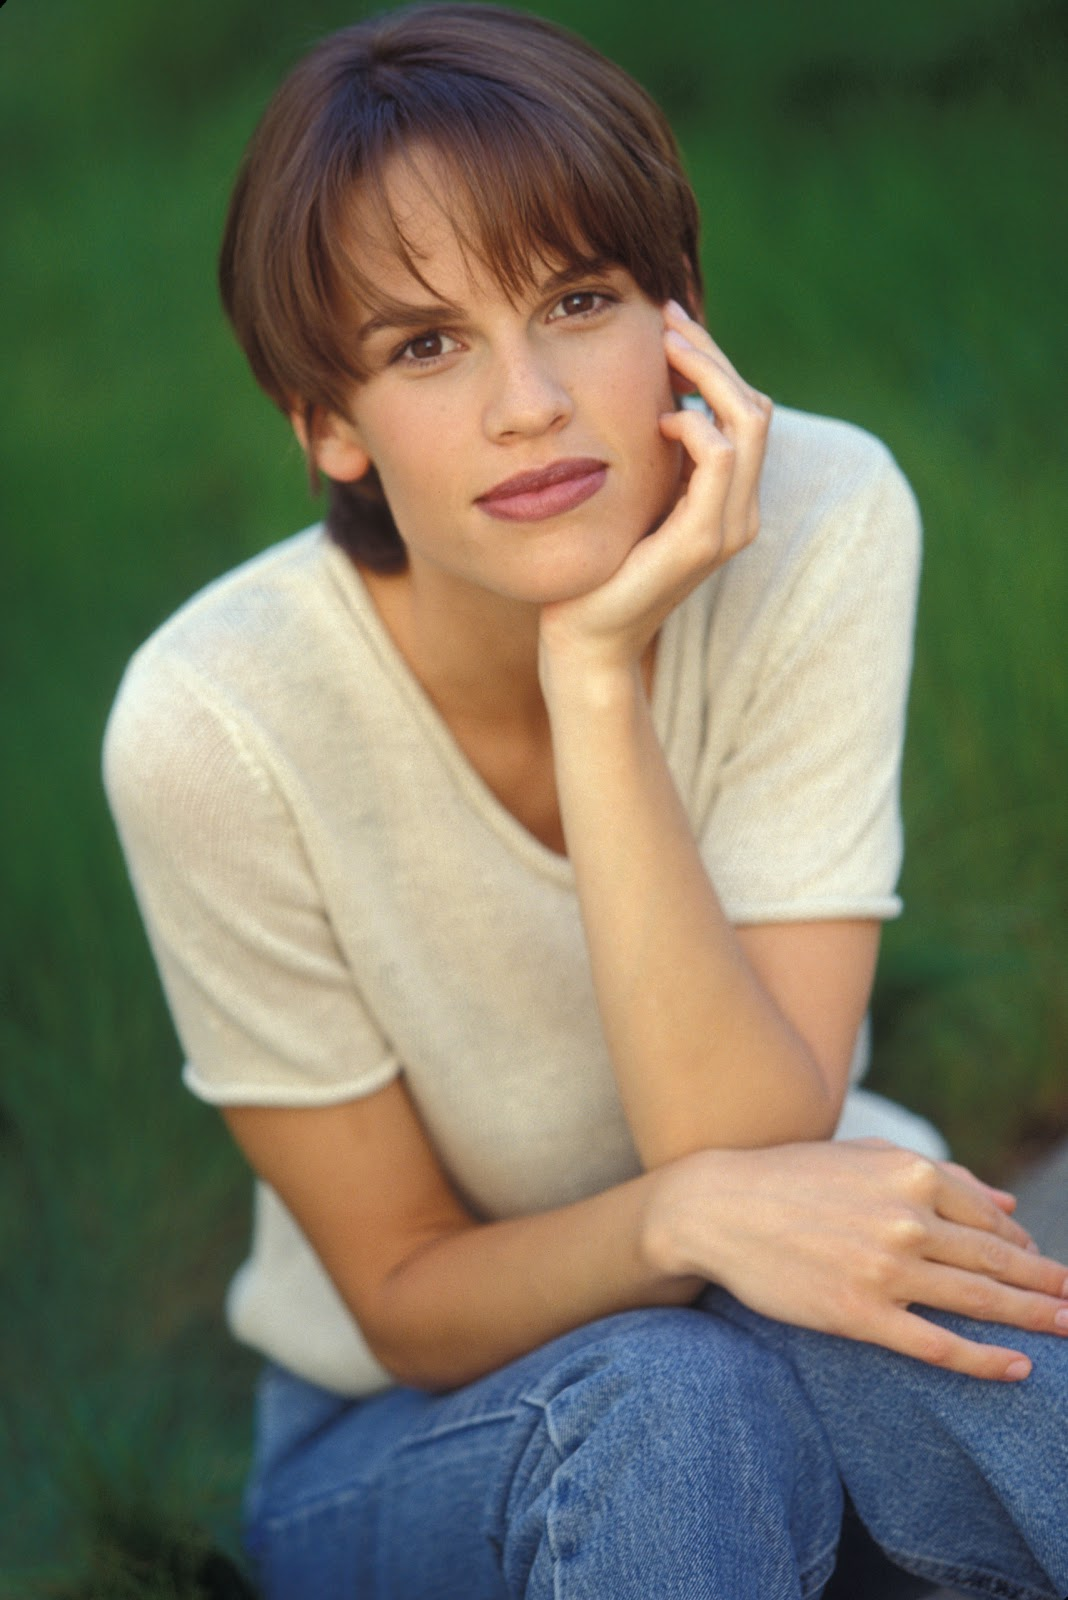 Hilary Swank As Young Girl Photo 1